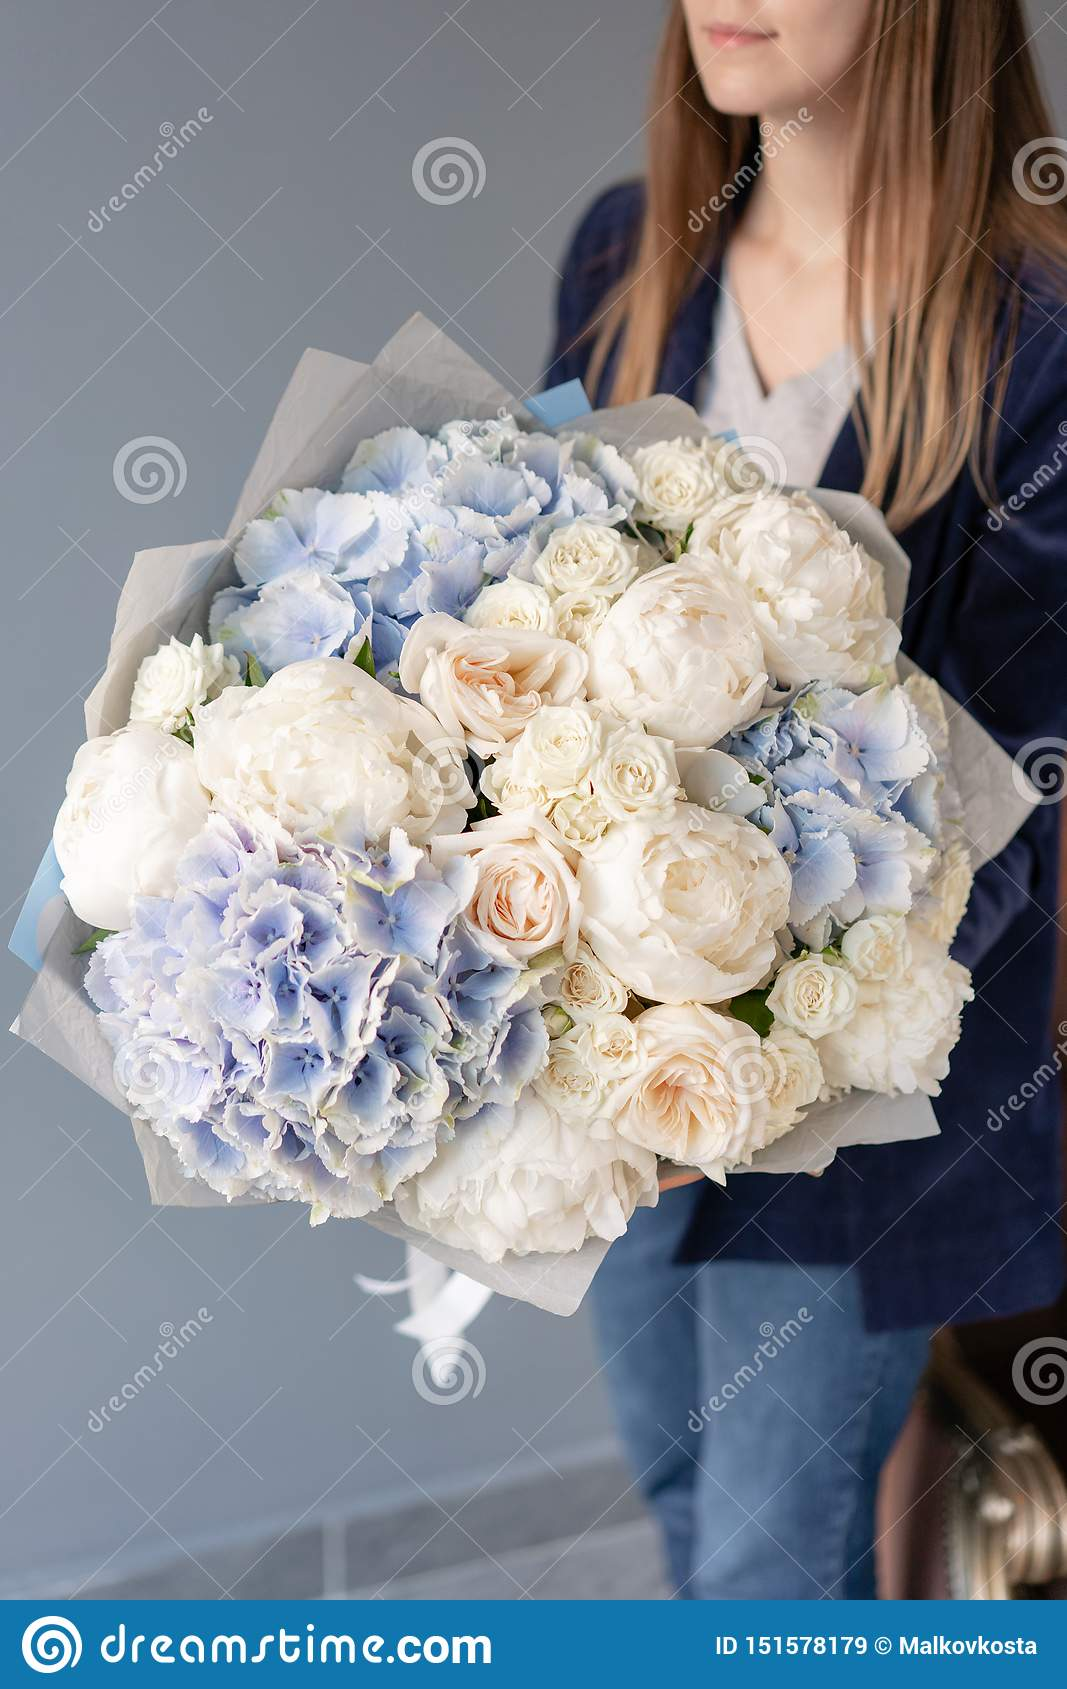 White peonies and blue hydrangea. Beautiful bouquet of mixed flowers in woman hand. Floral shop concept . Handsome fresh